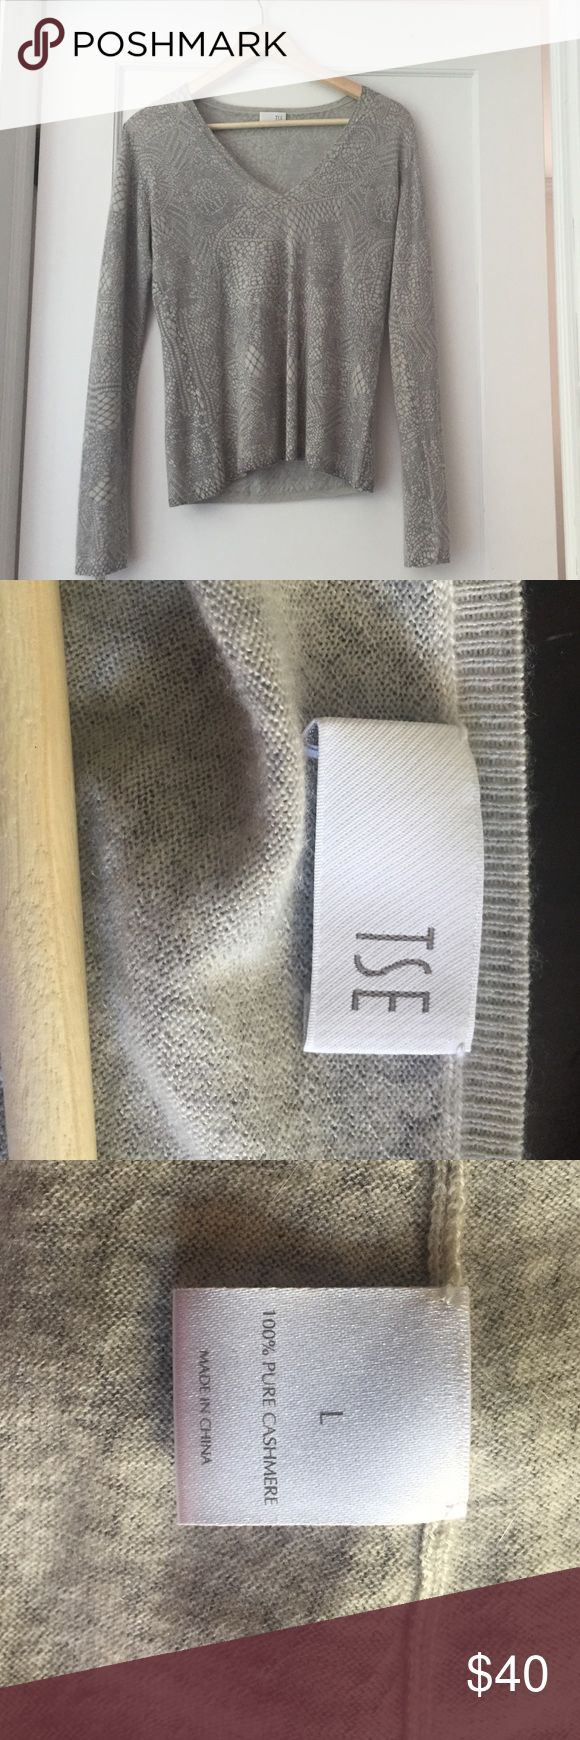 TSE Cashmere sweater Slightly used in great condition 100% cashmere sweater. TSE Sweaters V-Necks